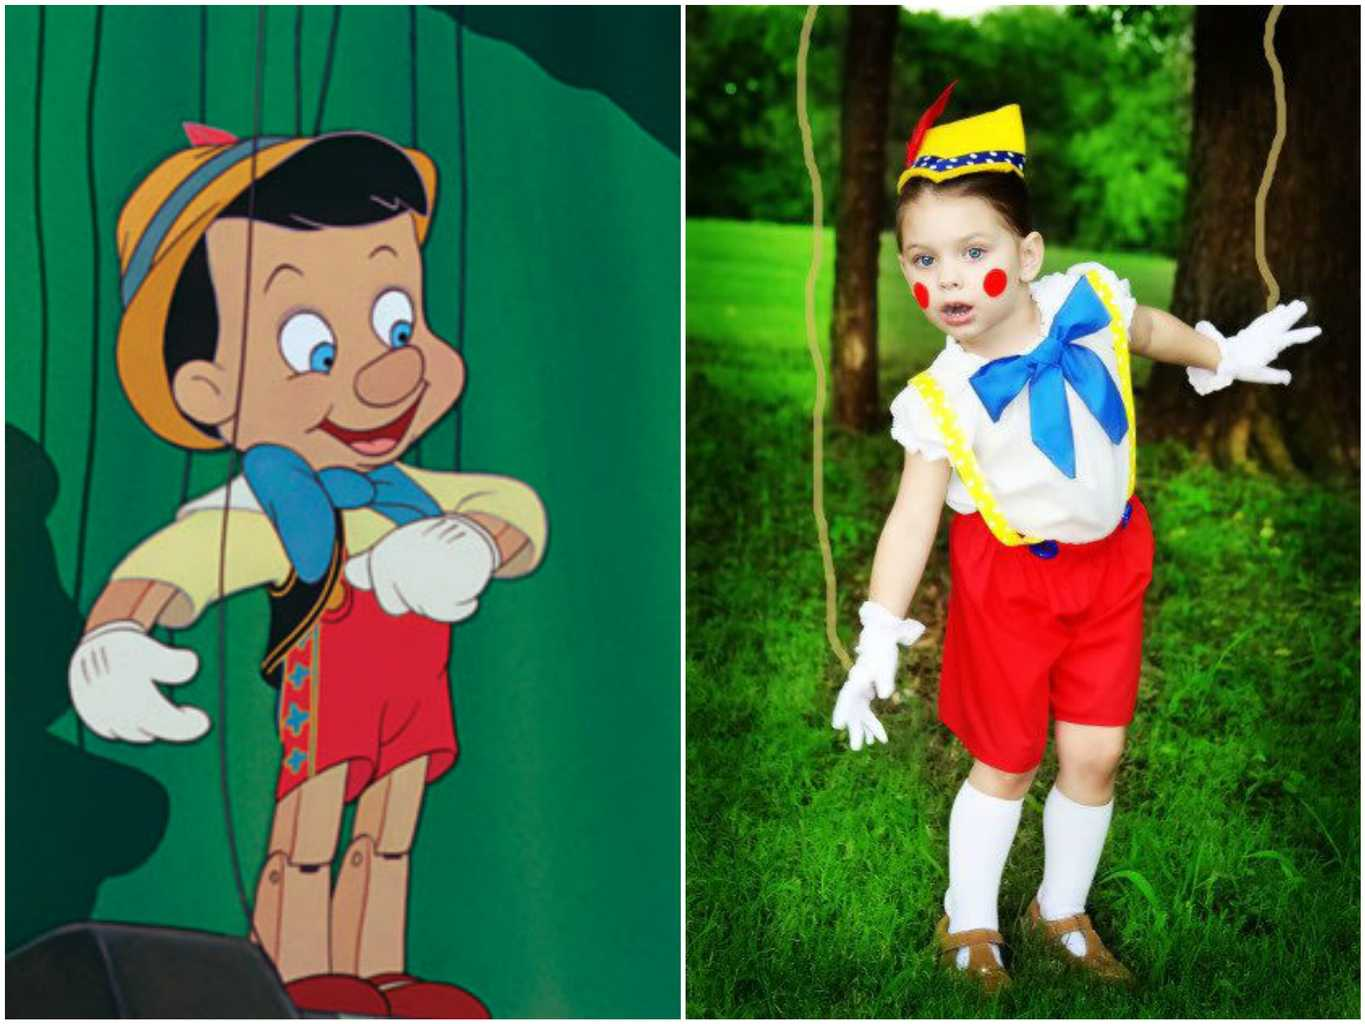 dde182b46 World Book Day: easy DIY costume ideas | Closer